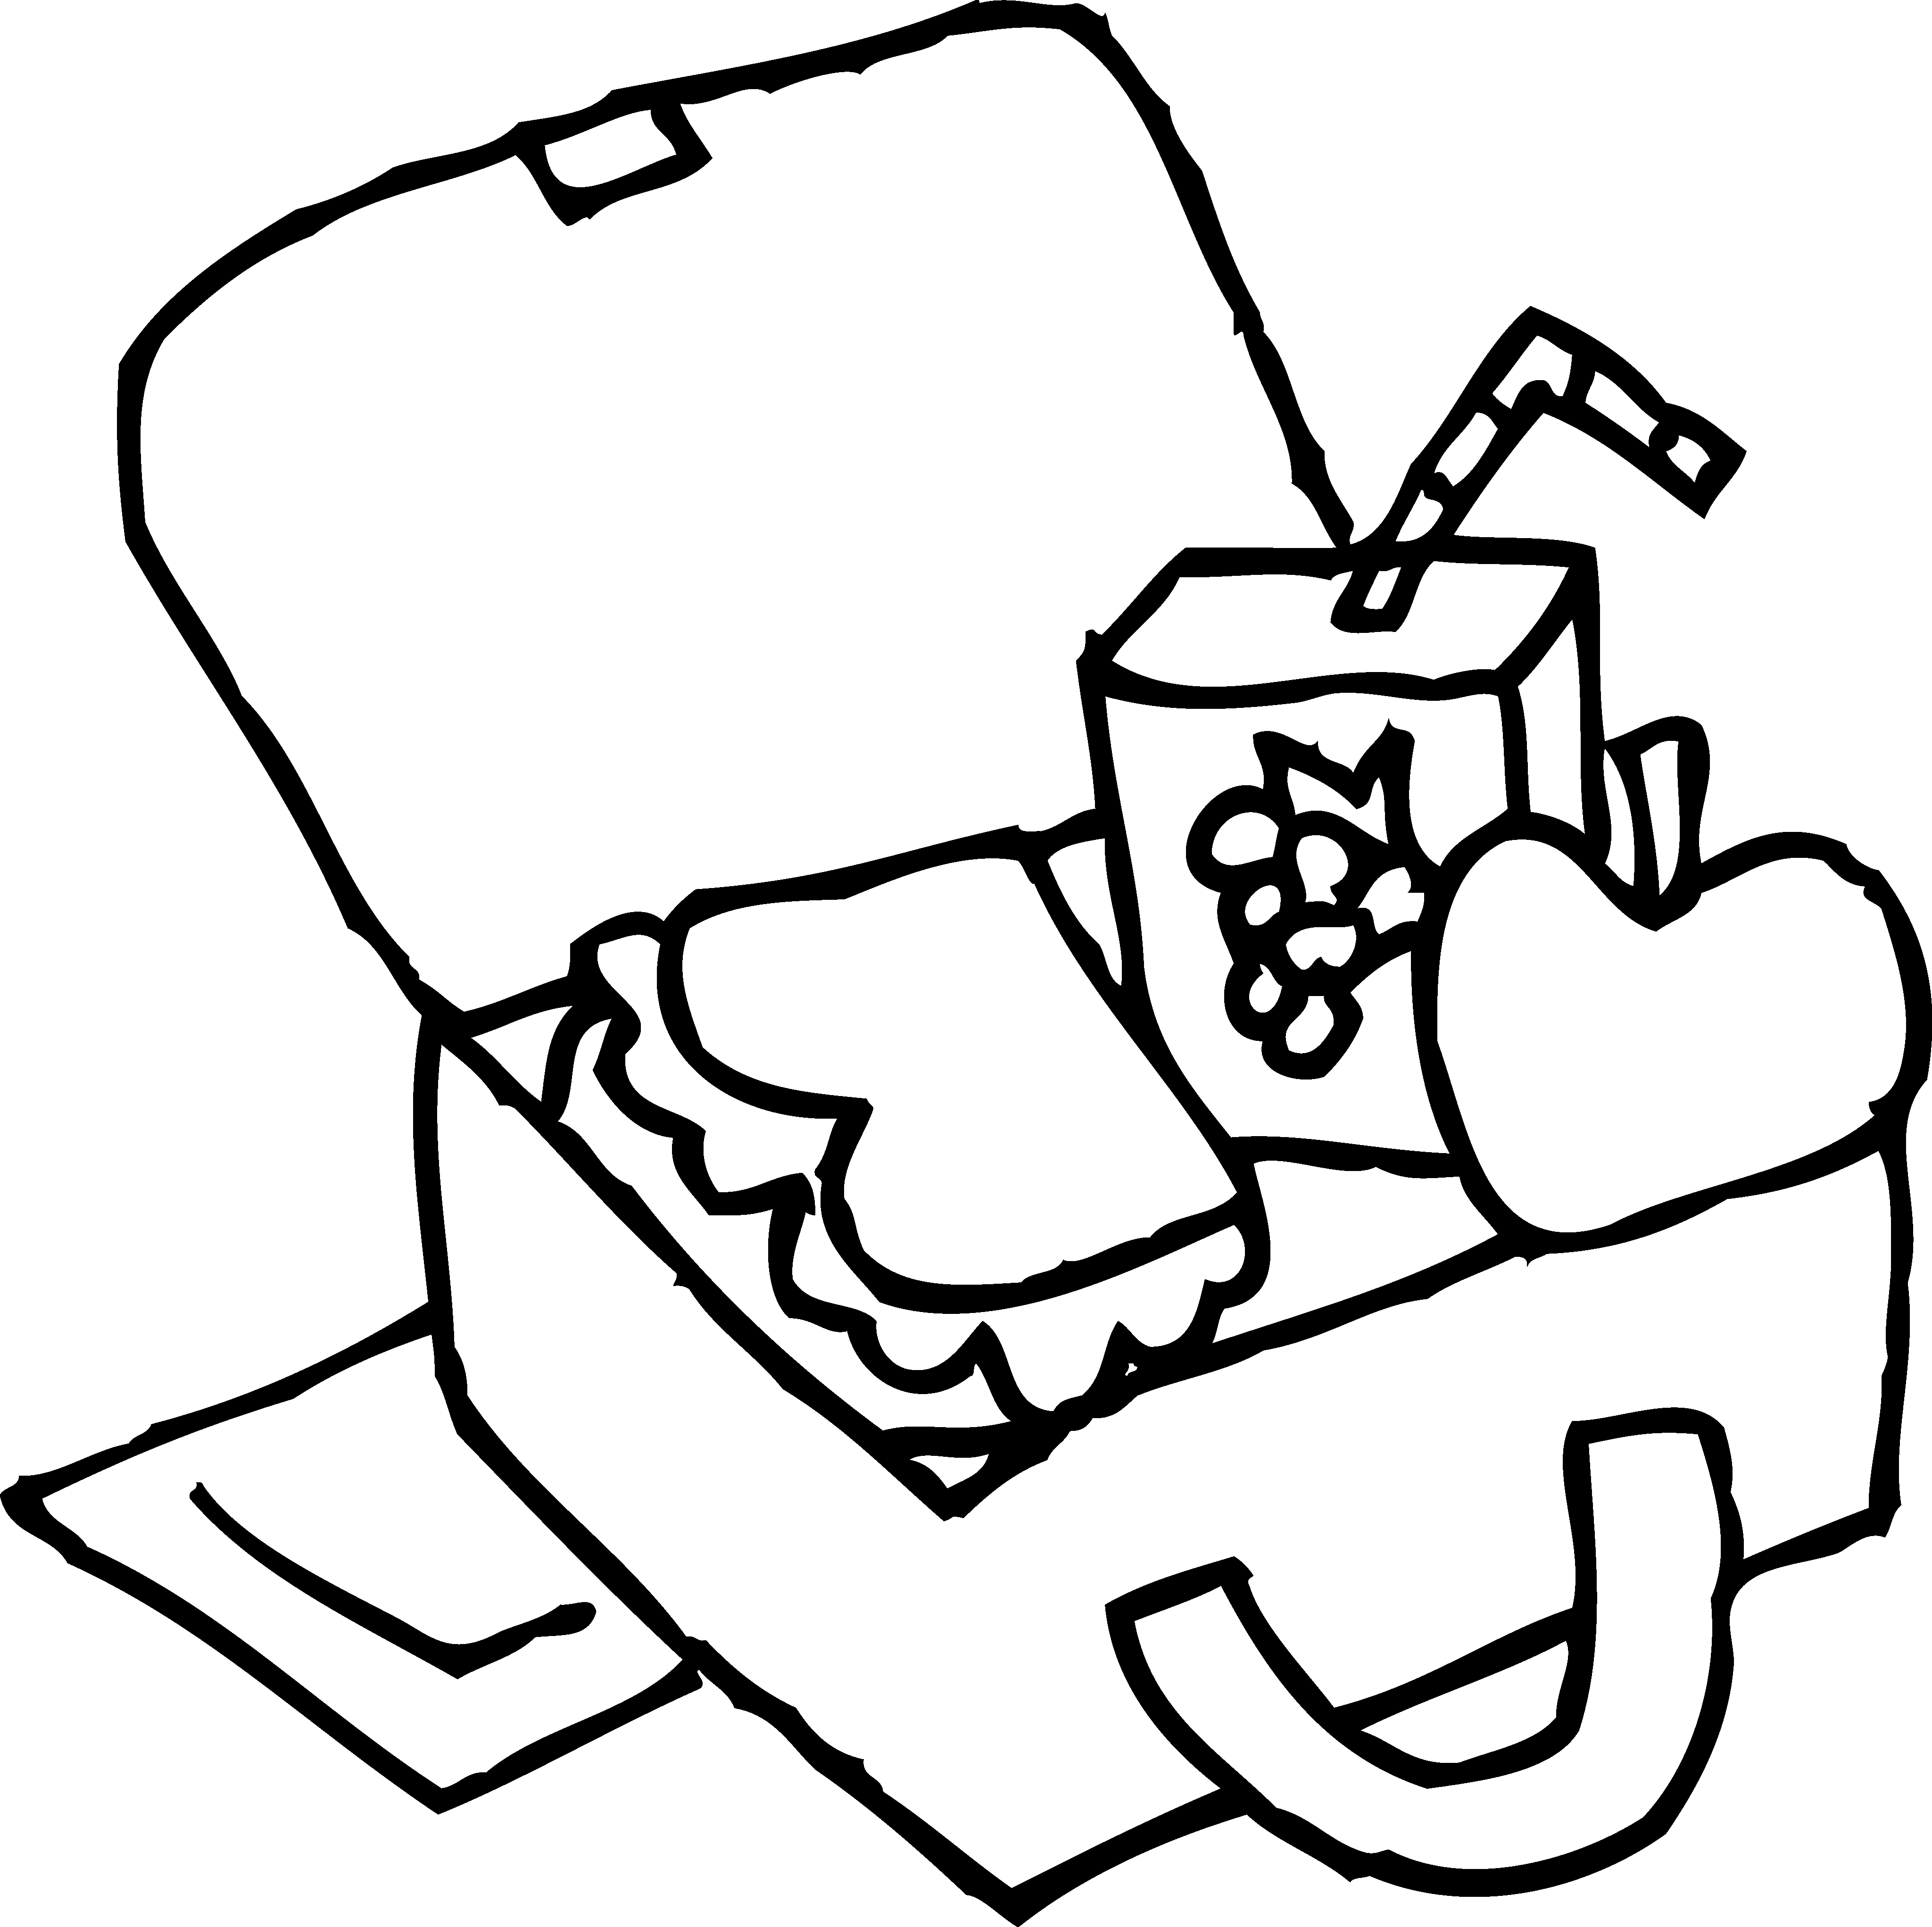 Lunchbox clipart outline. Cereal box coloring page